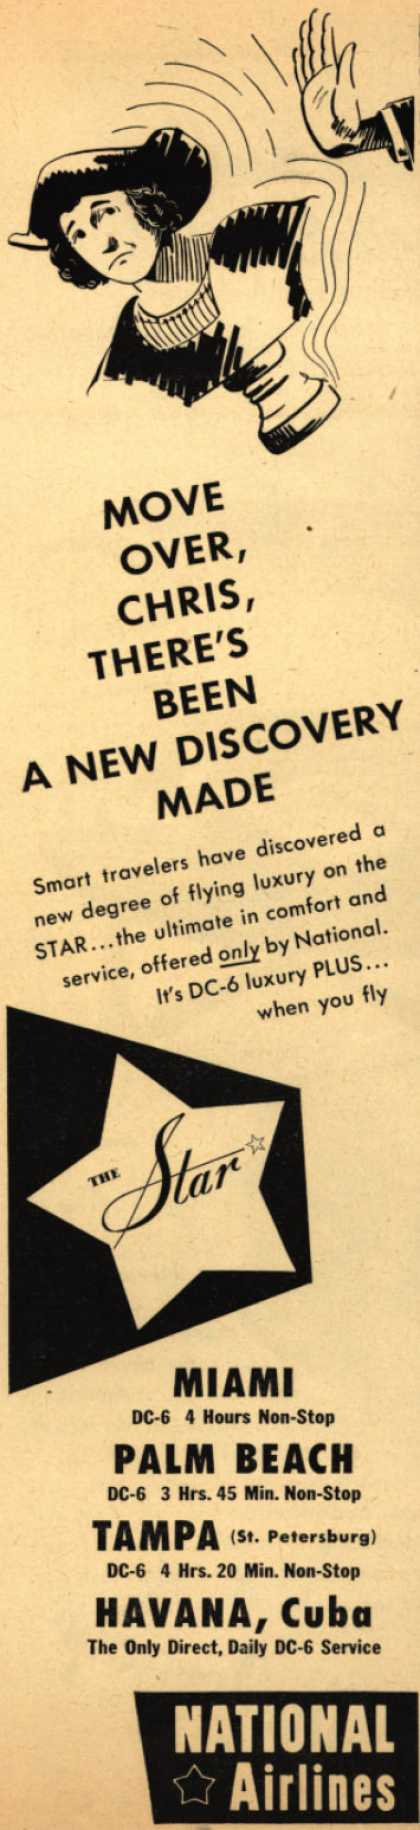 National Airline's Star – Move Over, Chris, There's Been A New Discovery Made (1950)